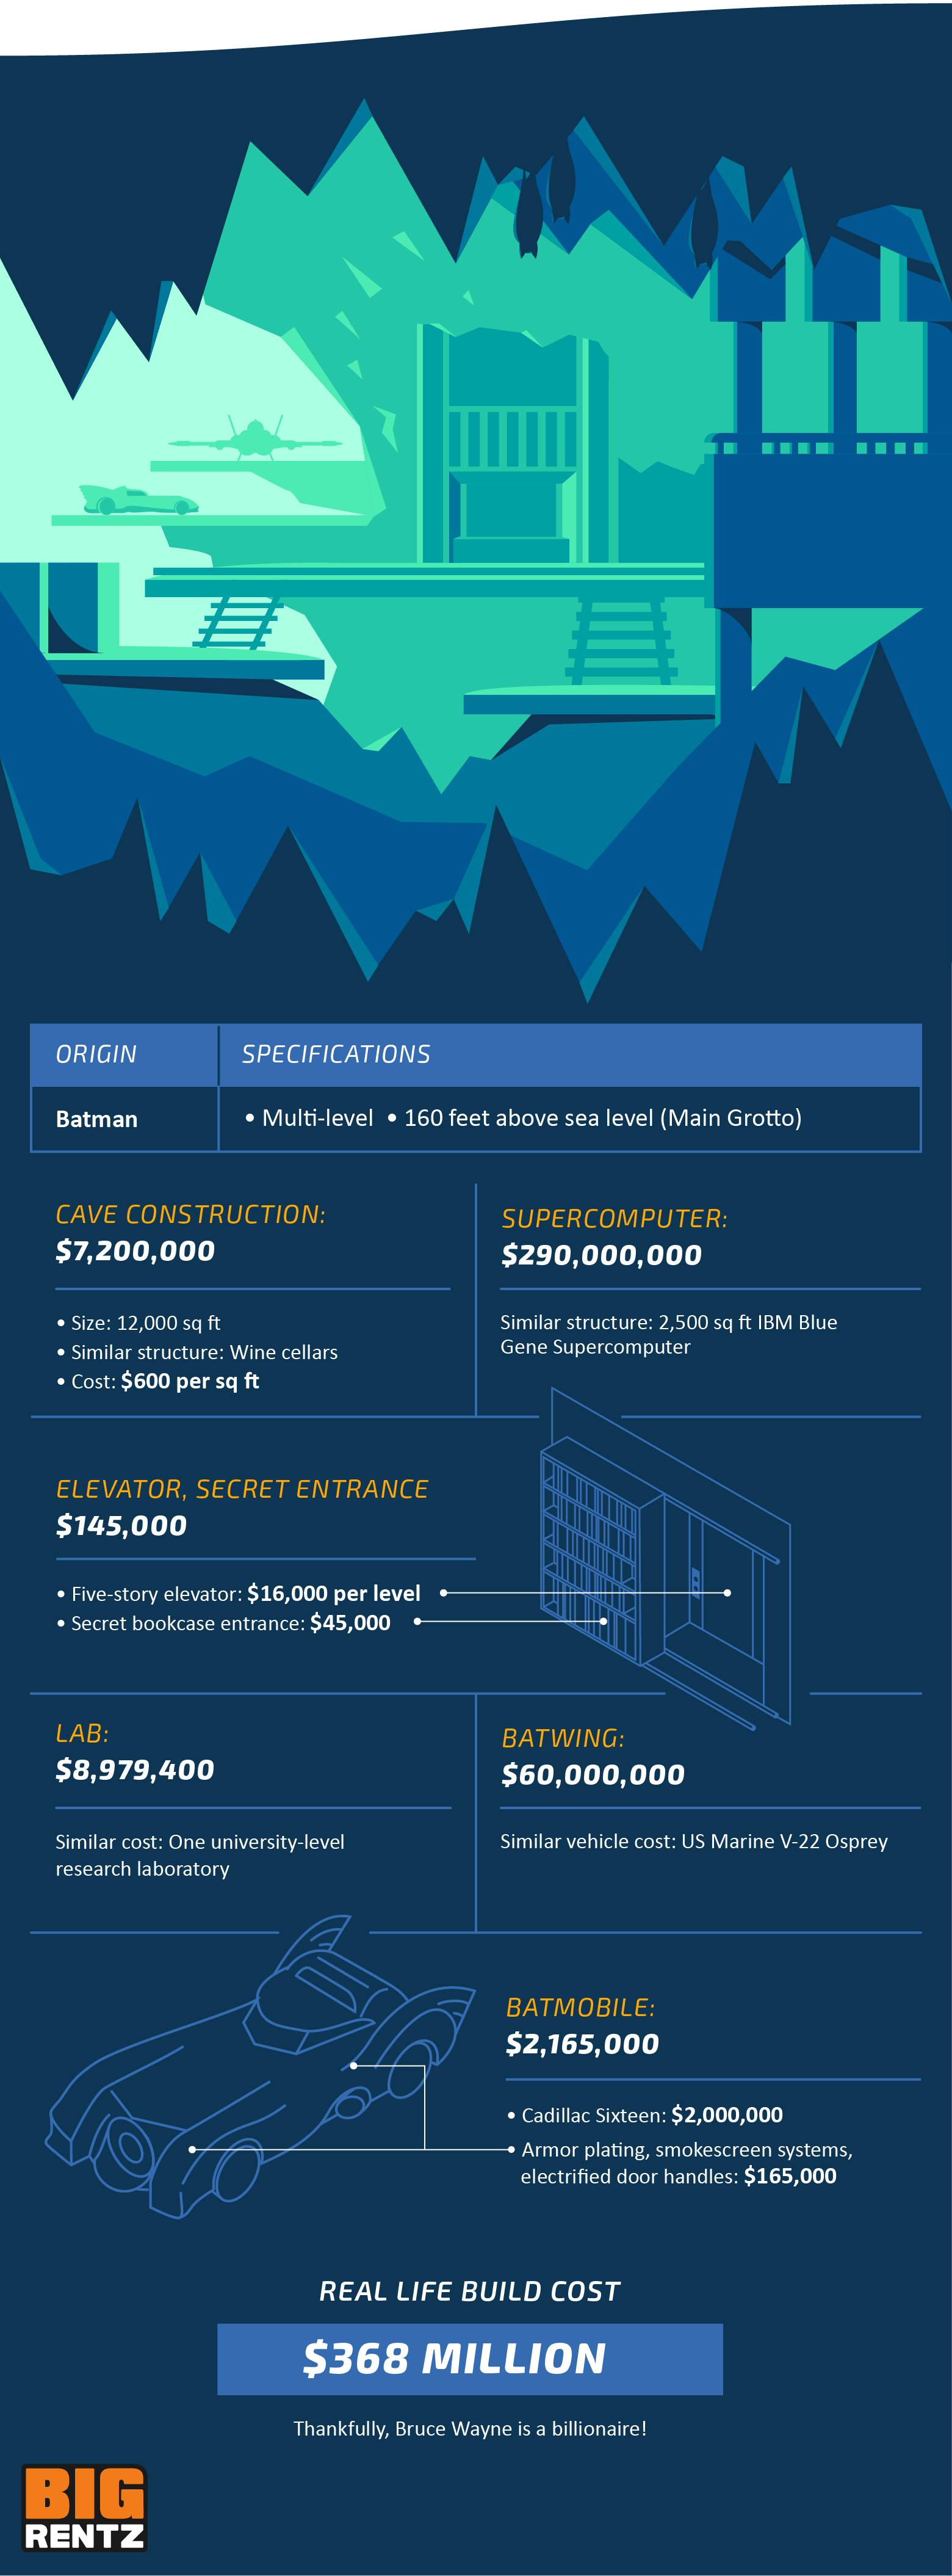 How much would fictional DC character Batman's home/office Bat Cave cost to build in real life?